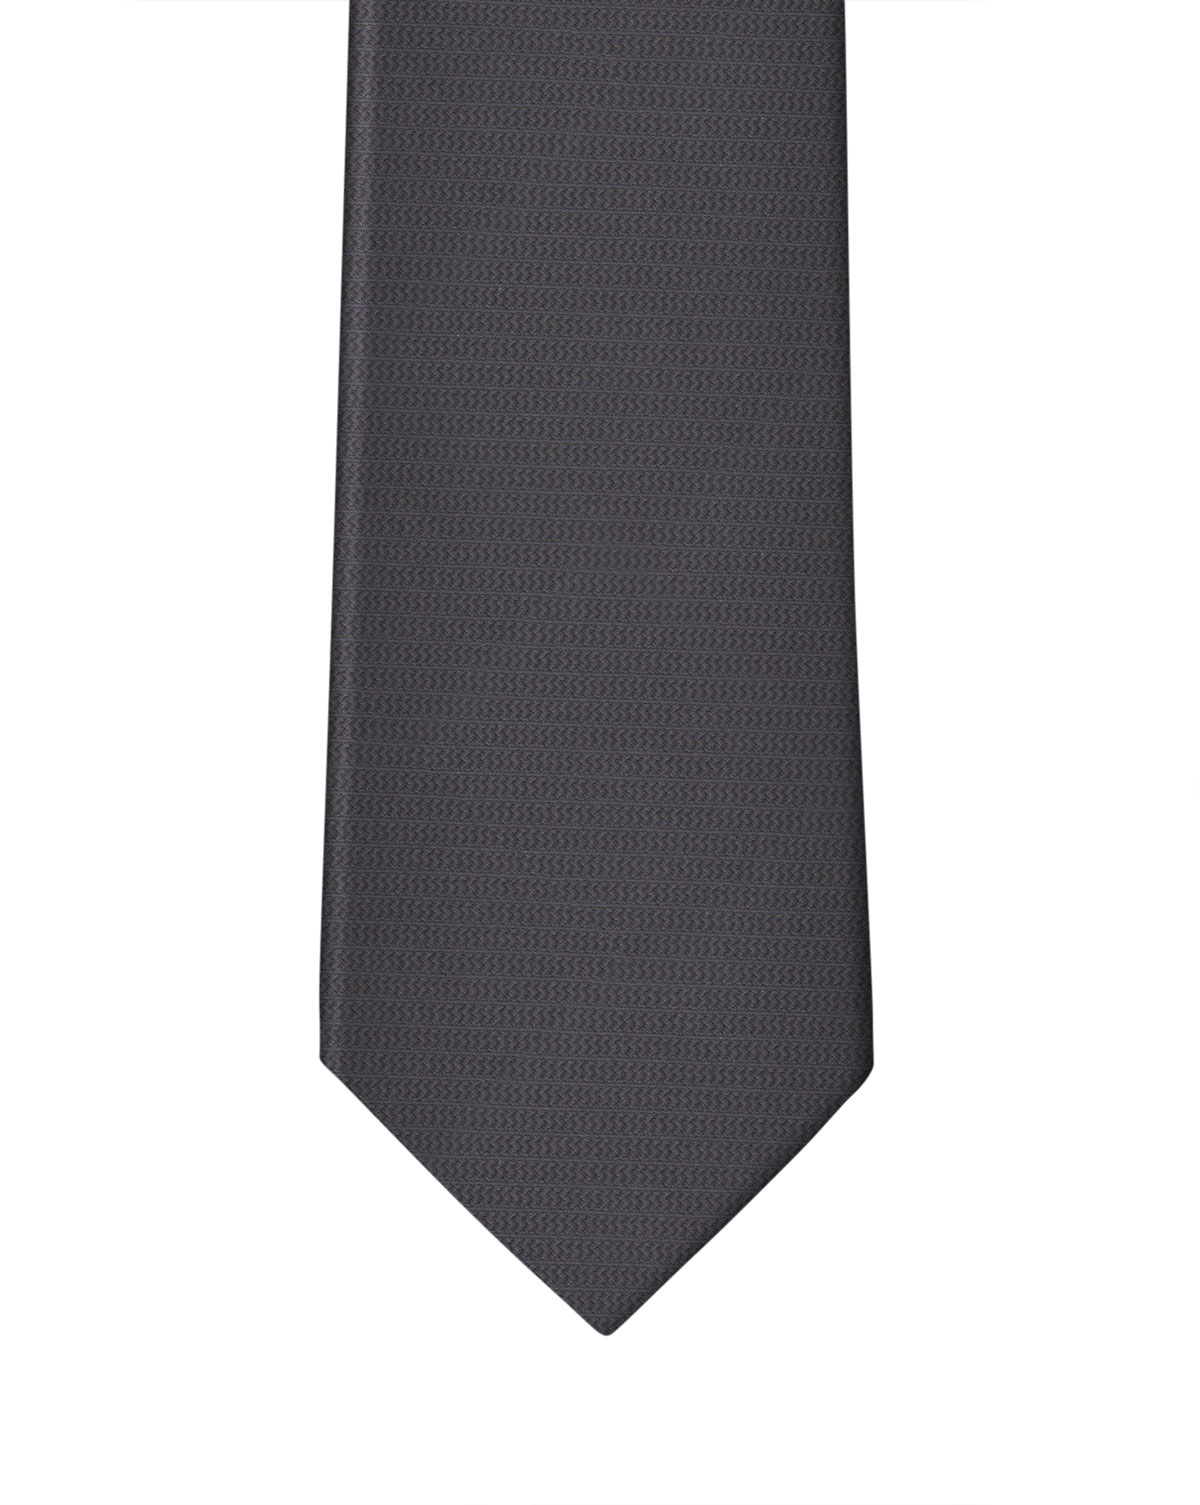 Charcoal Textured Tone-on-Tone Stripe Necktie